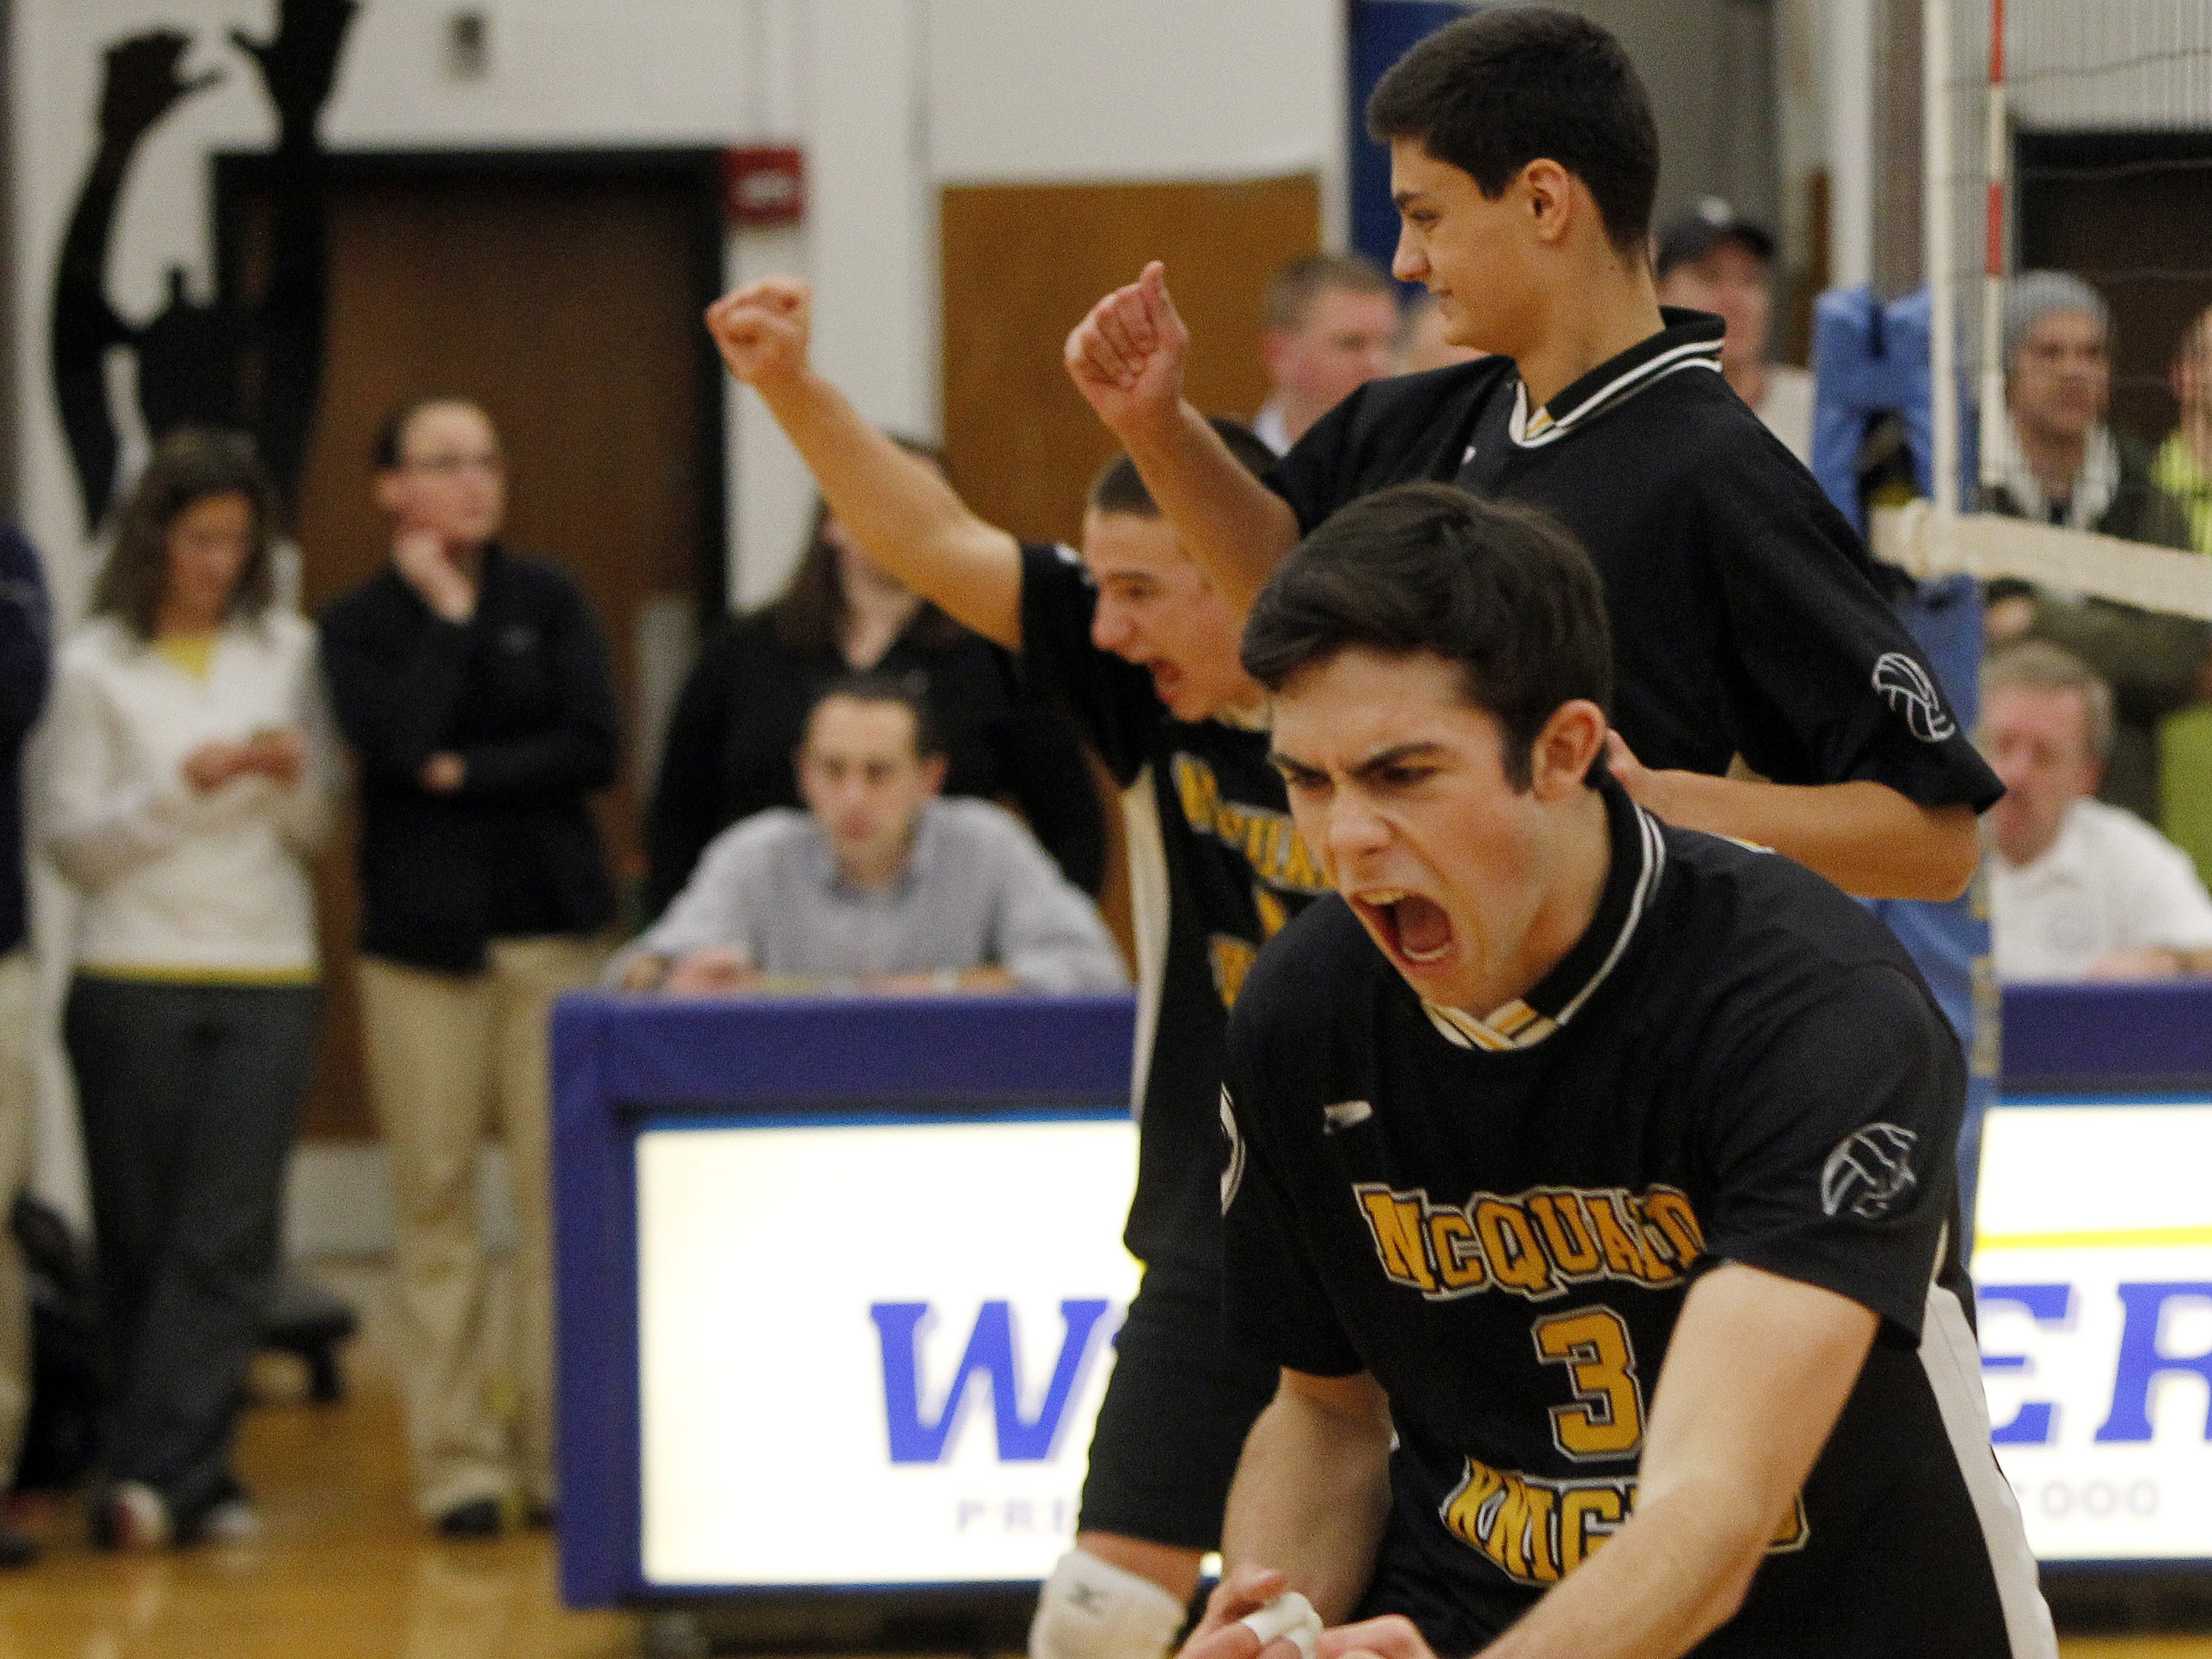 McQuaid's Colby Harriman, front, is fired up after a kill during Section V Class A boys volleyball championship action between the McQuaid Jesuit Knights and the Fairport Red Raiders at Webster Schroeder high school Thursday evening, Nov. 7, 2013.